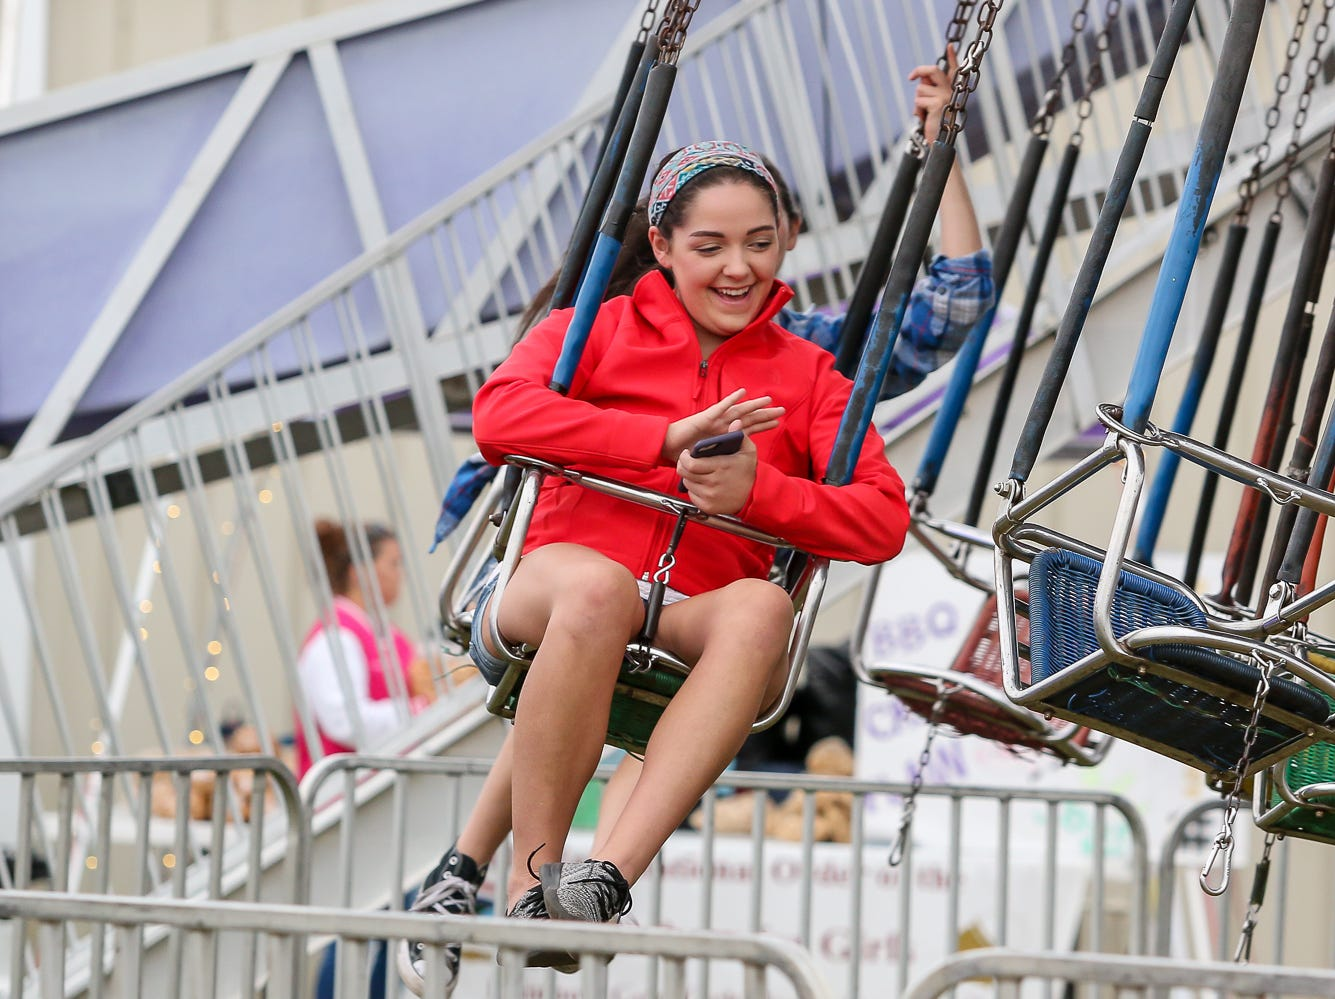 Chloe Whitfield, 24, of Molino, smiles as she rides some swings during the 84th annual Pensacola Interstate Fair on Monday, October 22, 2018.